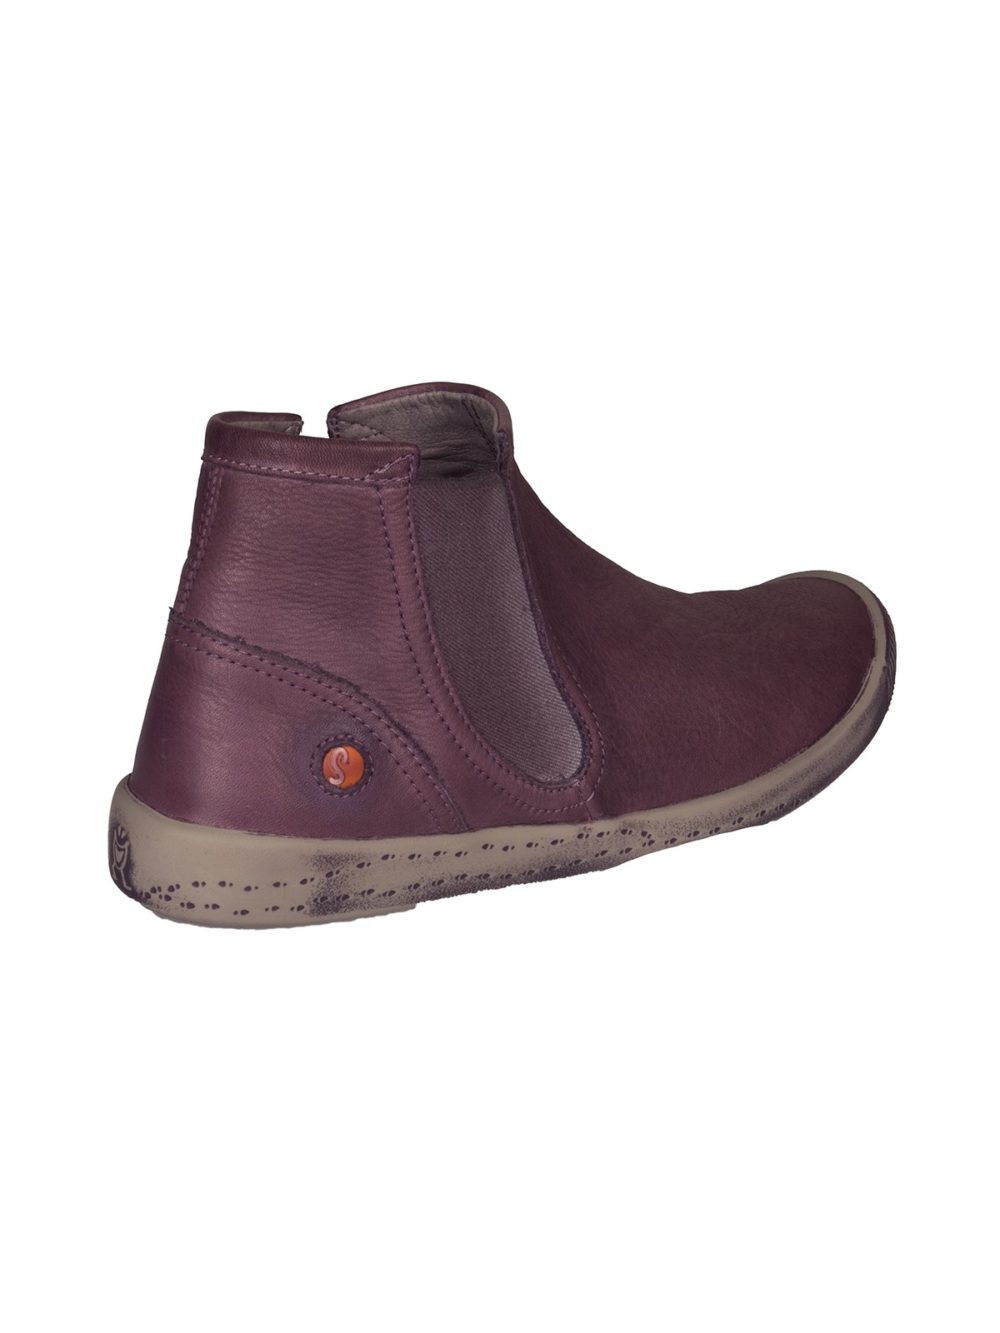 Ici Boot Softinos Katie Kerr Women's Clothing Women's Boots